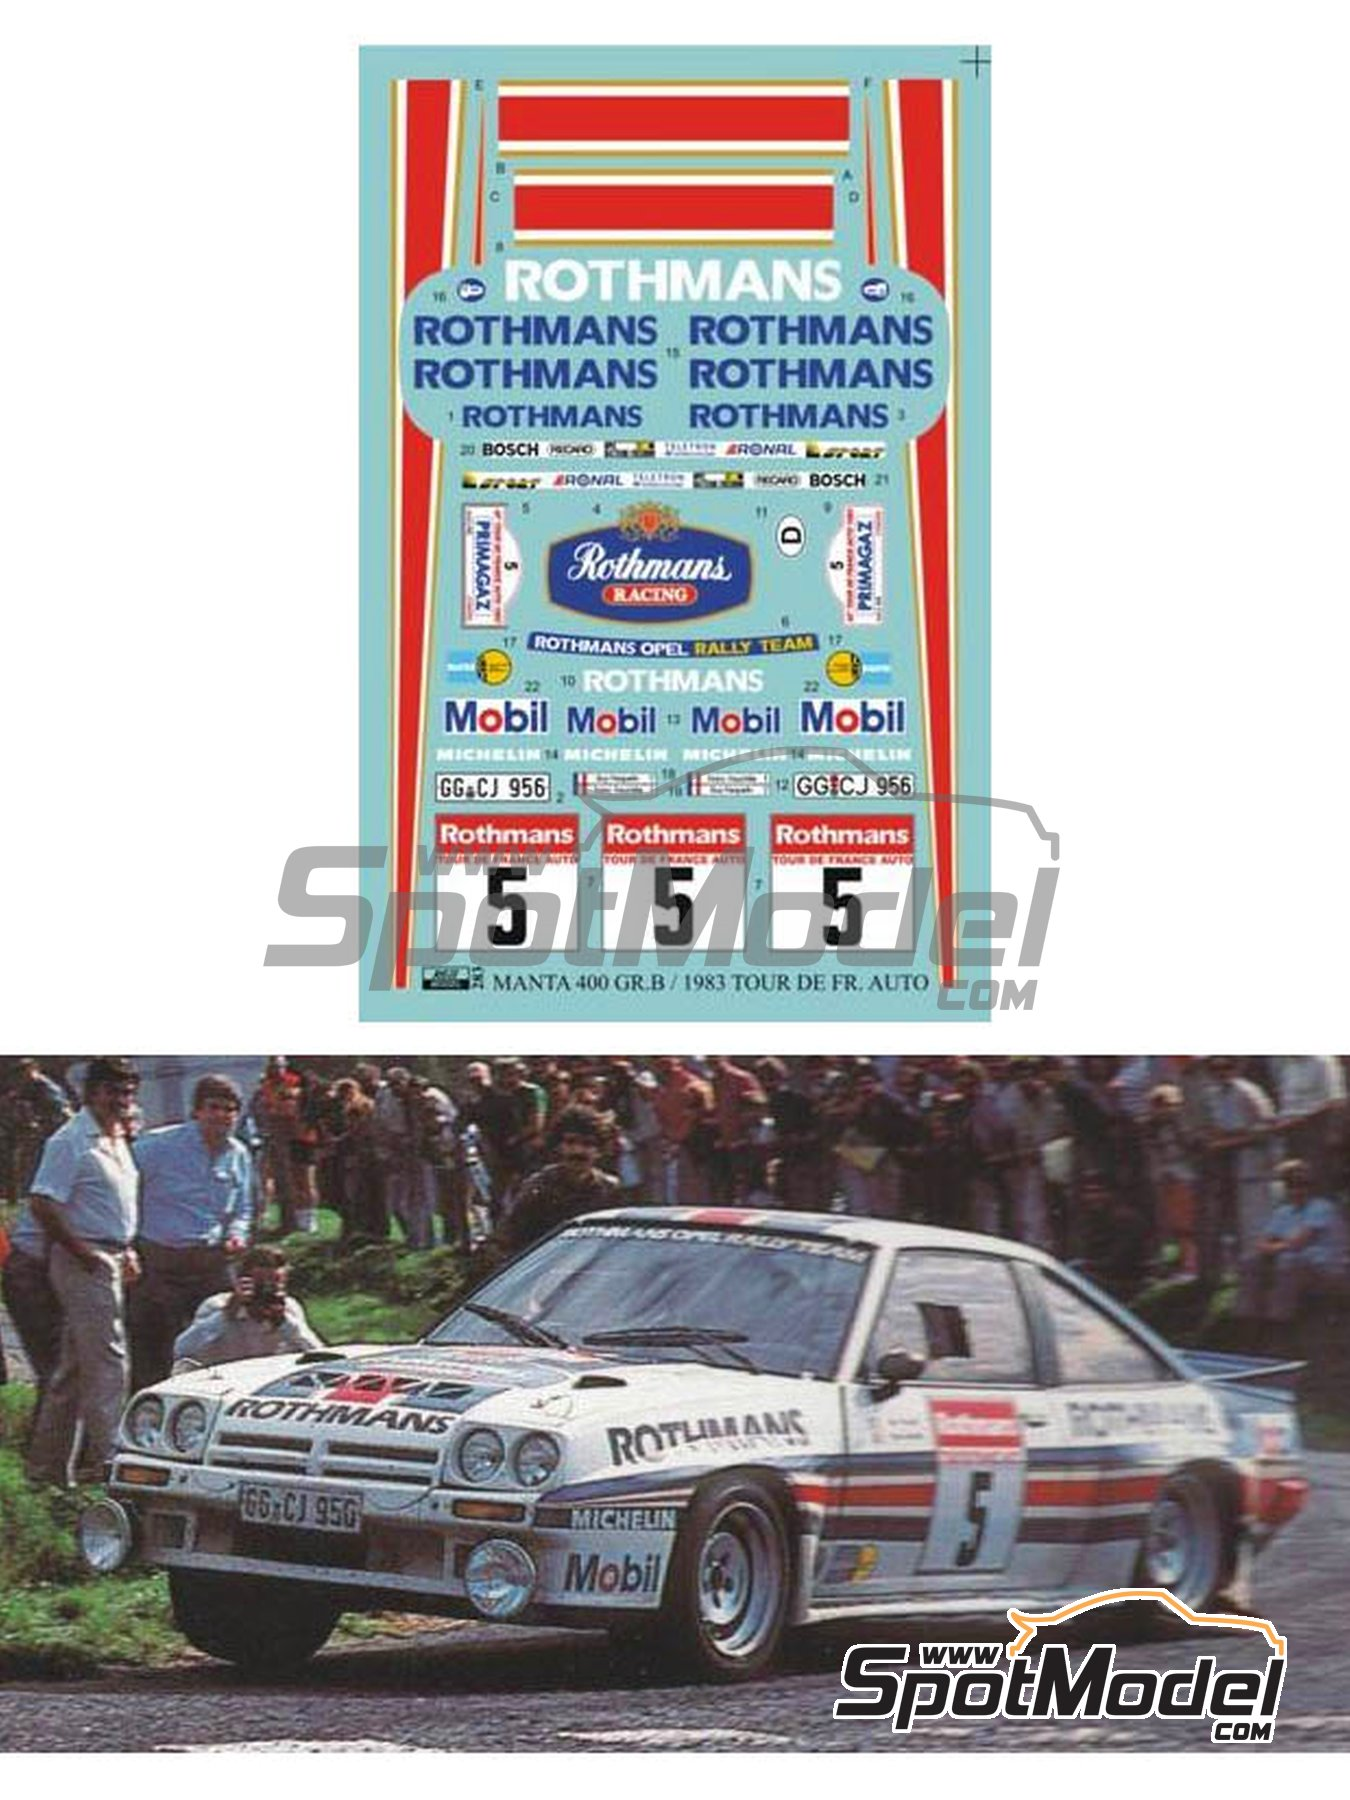 Opel Manta 400 Group B Rothmans Opel Rally Team - Tour de France Automobile 1983 | Marking / livery in 1/24 scale manufactured by Reji Model (ref. REJI-283) image